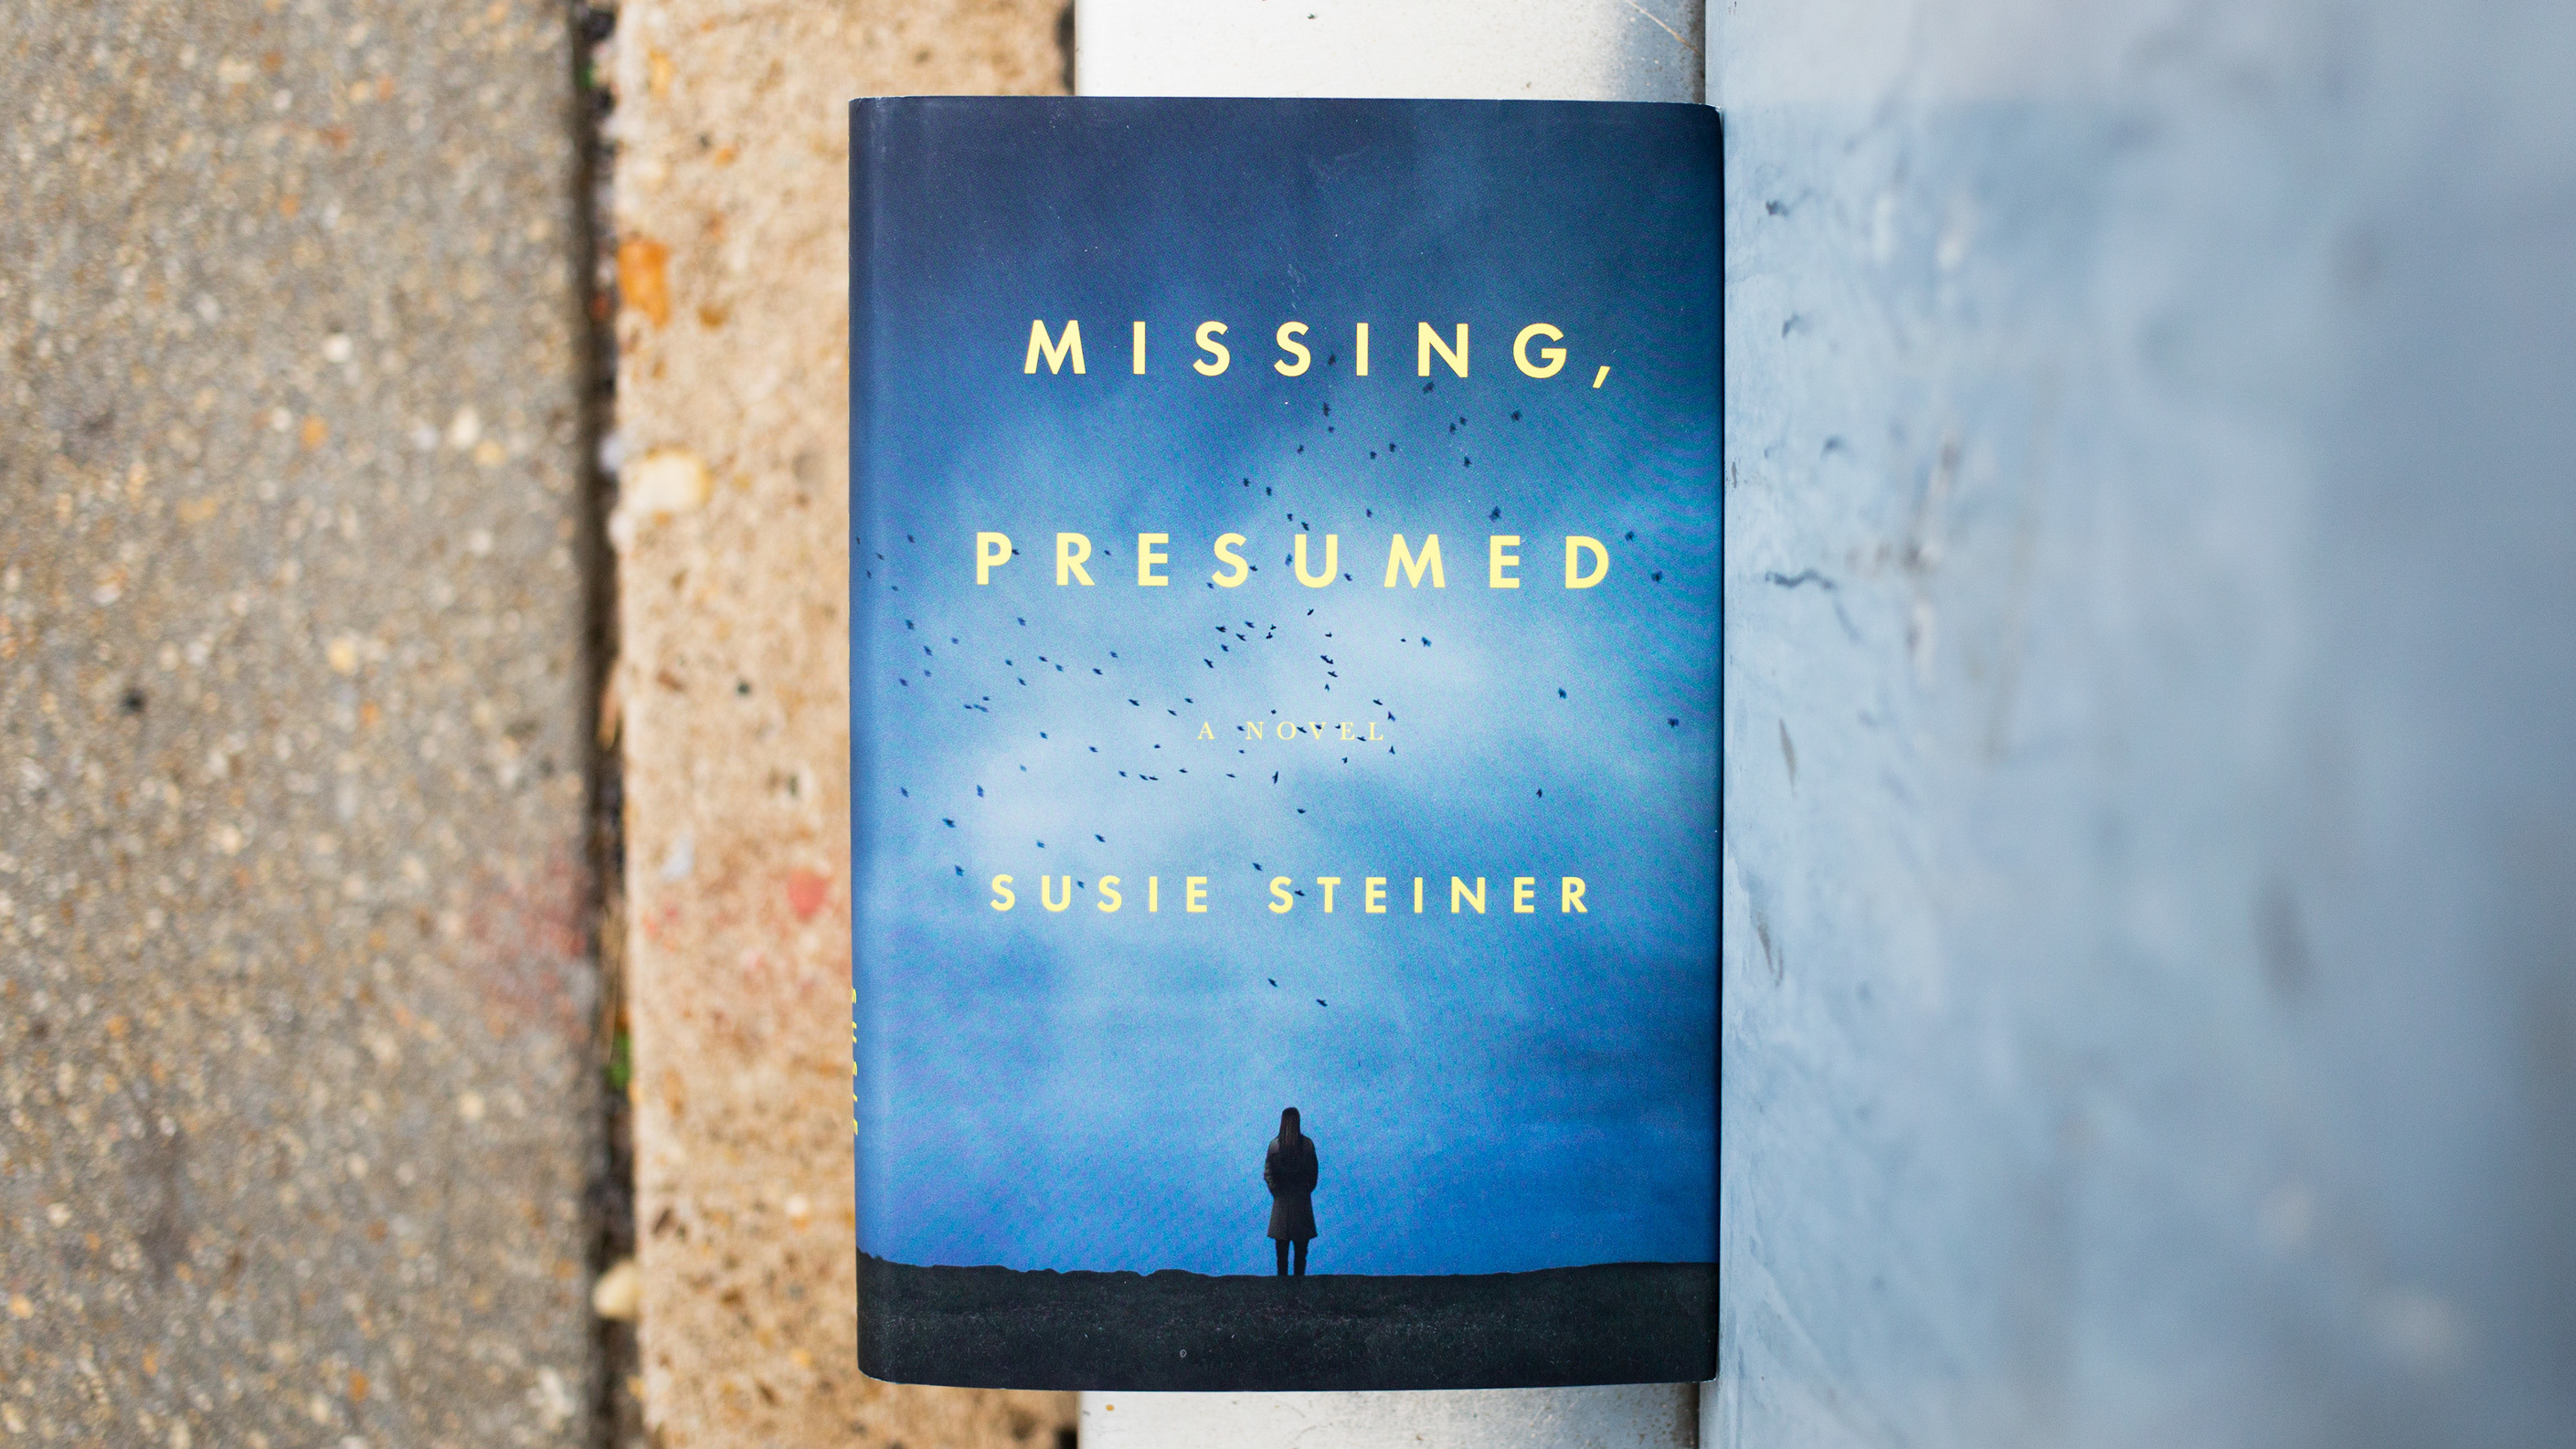 U0027Missing, Presumedu0027 Chronicles Ups And Downs Of Dating ... And Detective  Work : NPR  What Is Presumed